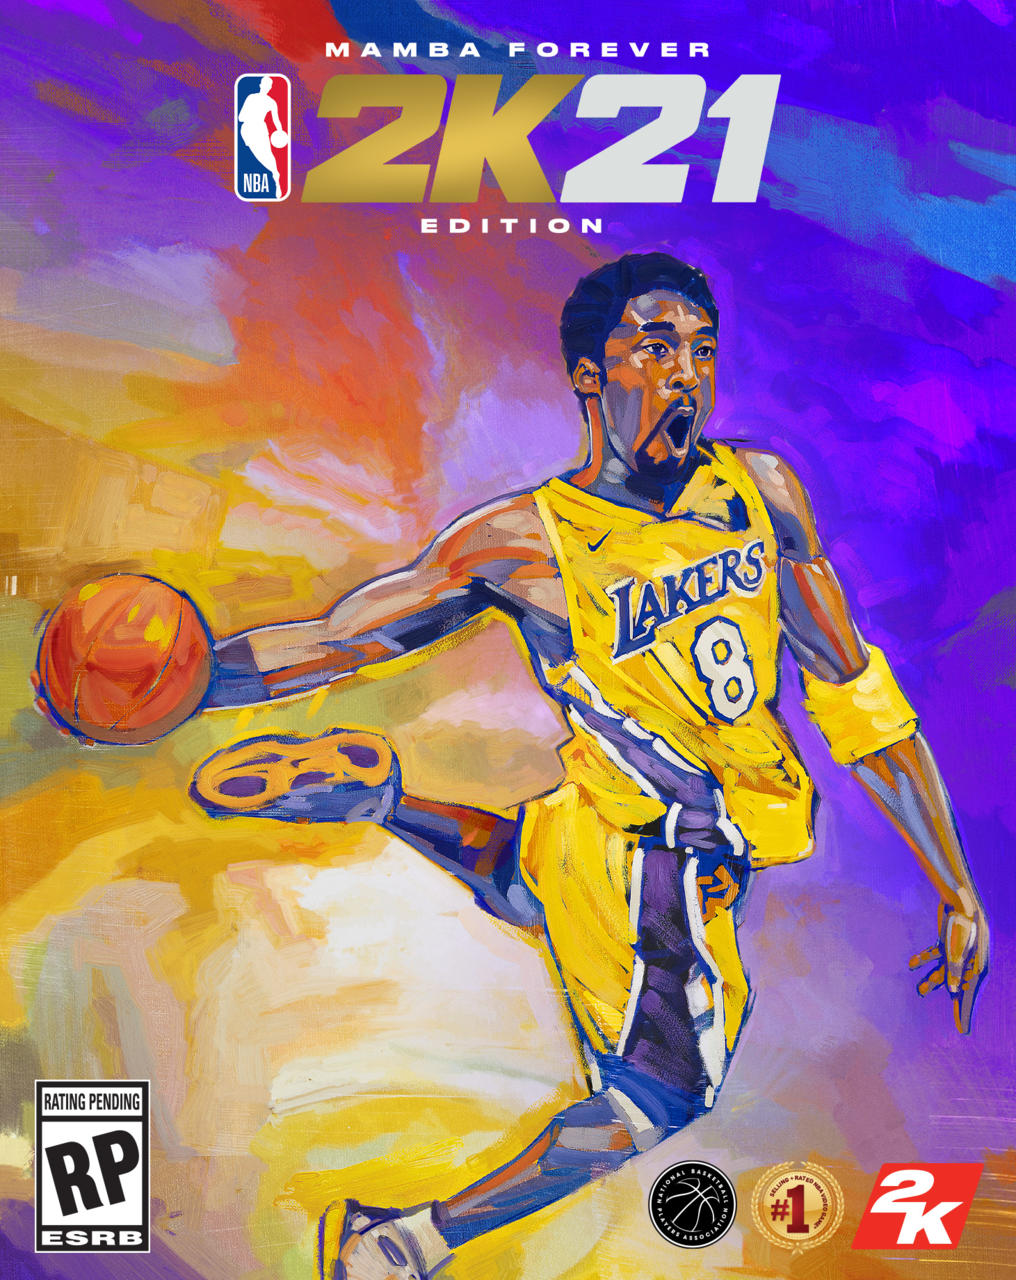 NBA 2K21 Mamba Forever edition on PS4/Xbox One